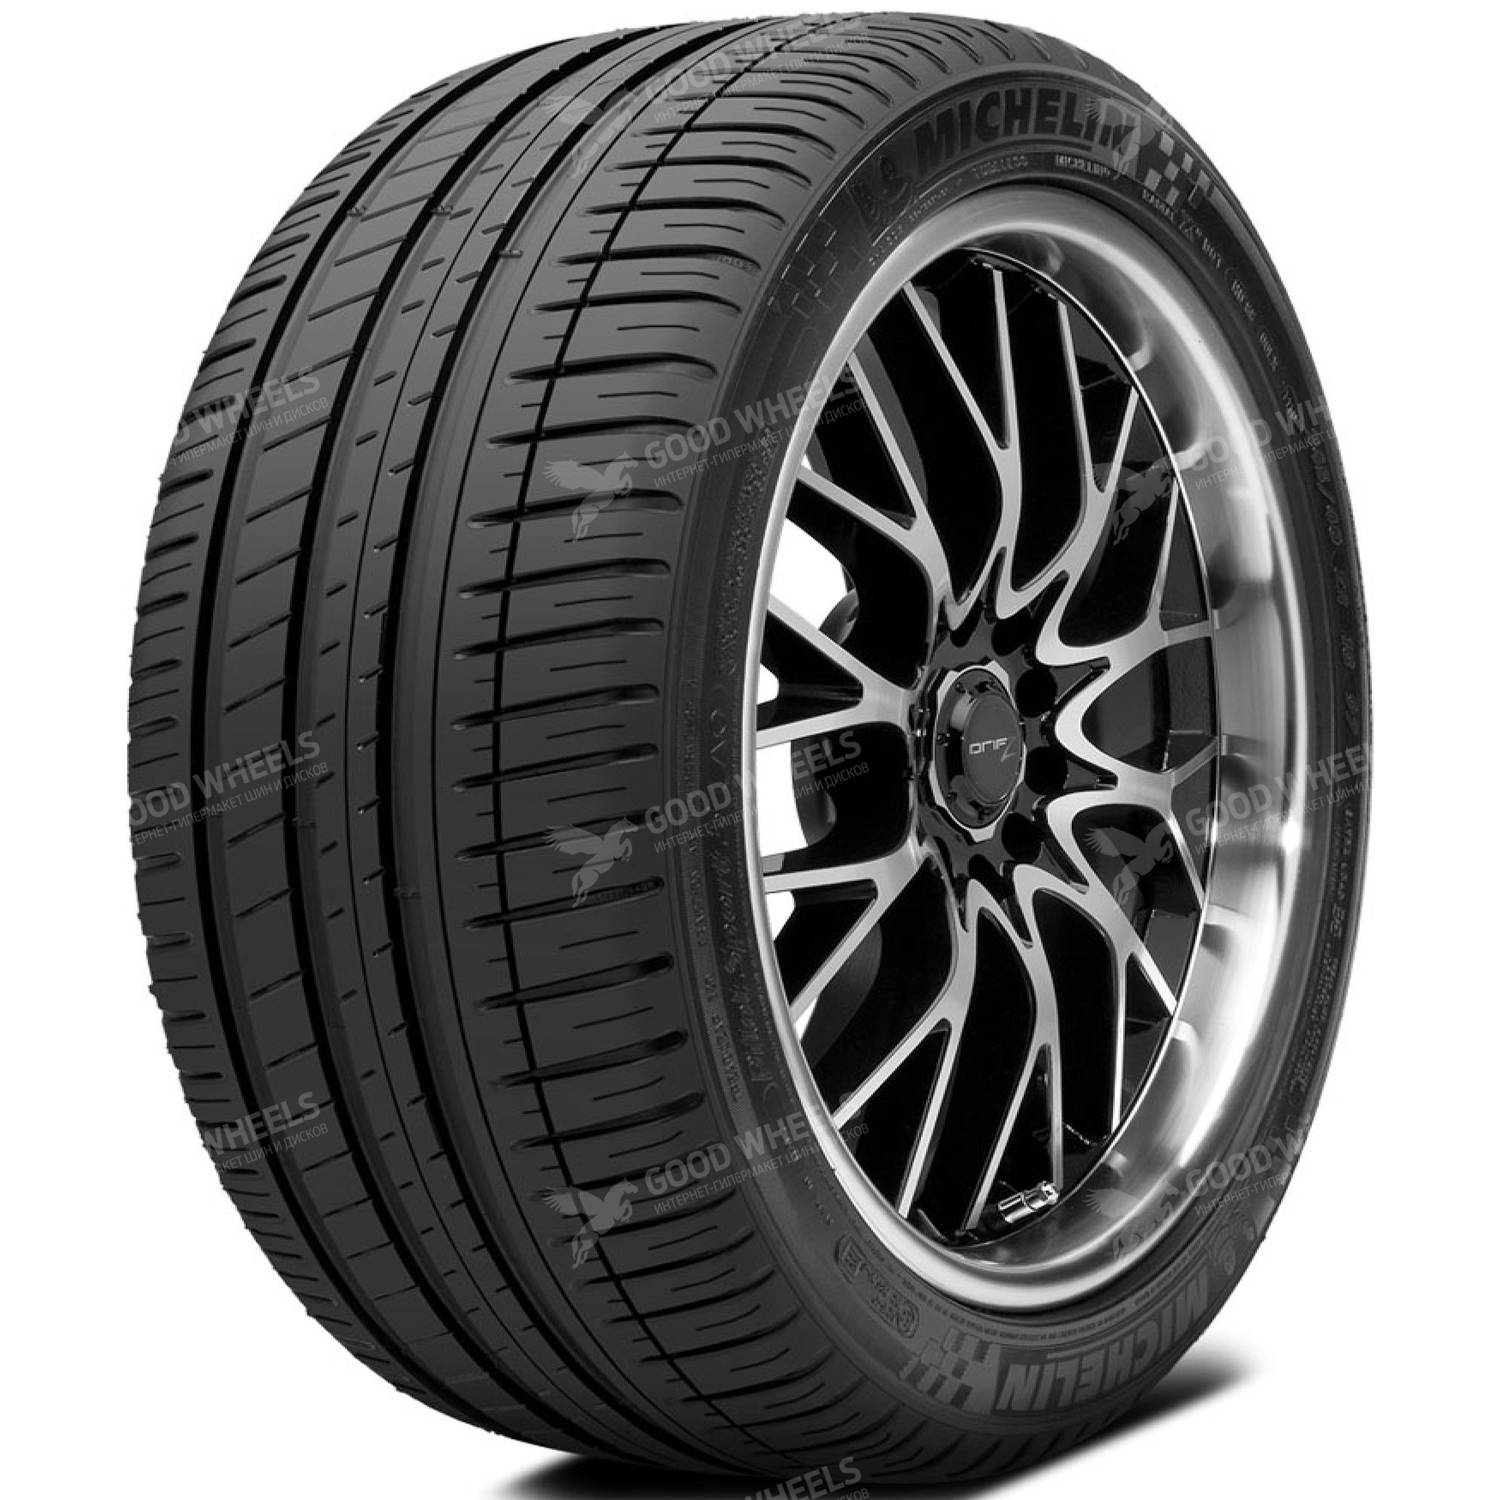 Michelin Pilot Sport 3 (PS3) 195/50 R15 82V